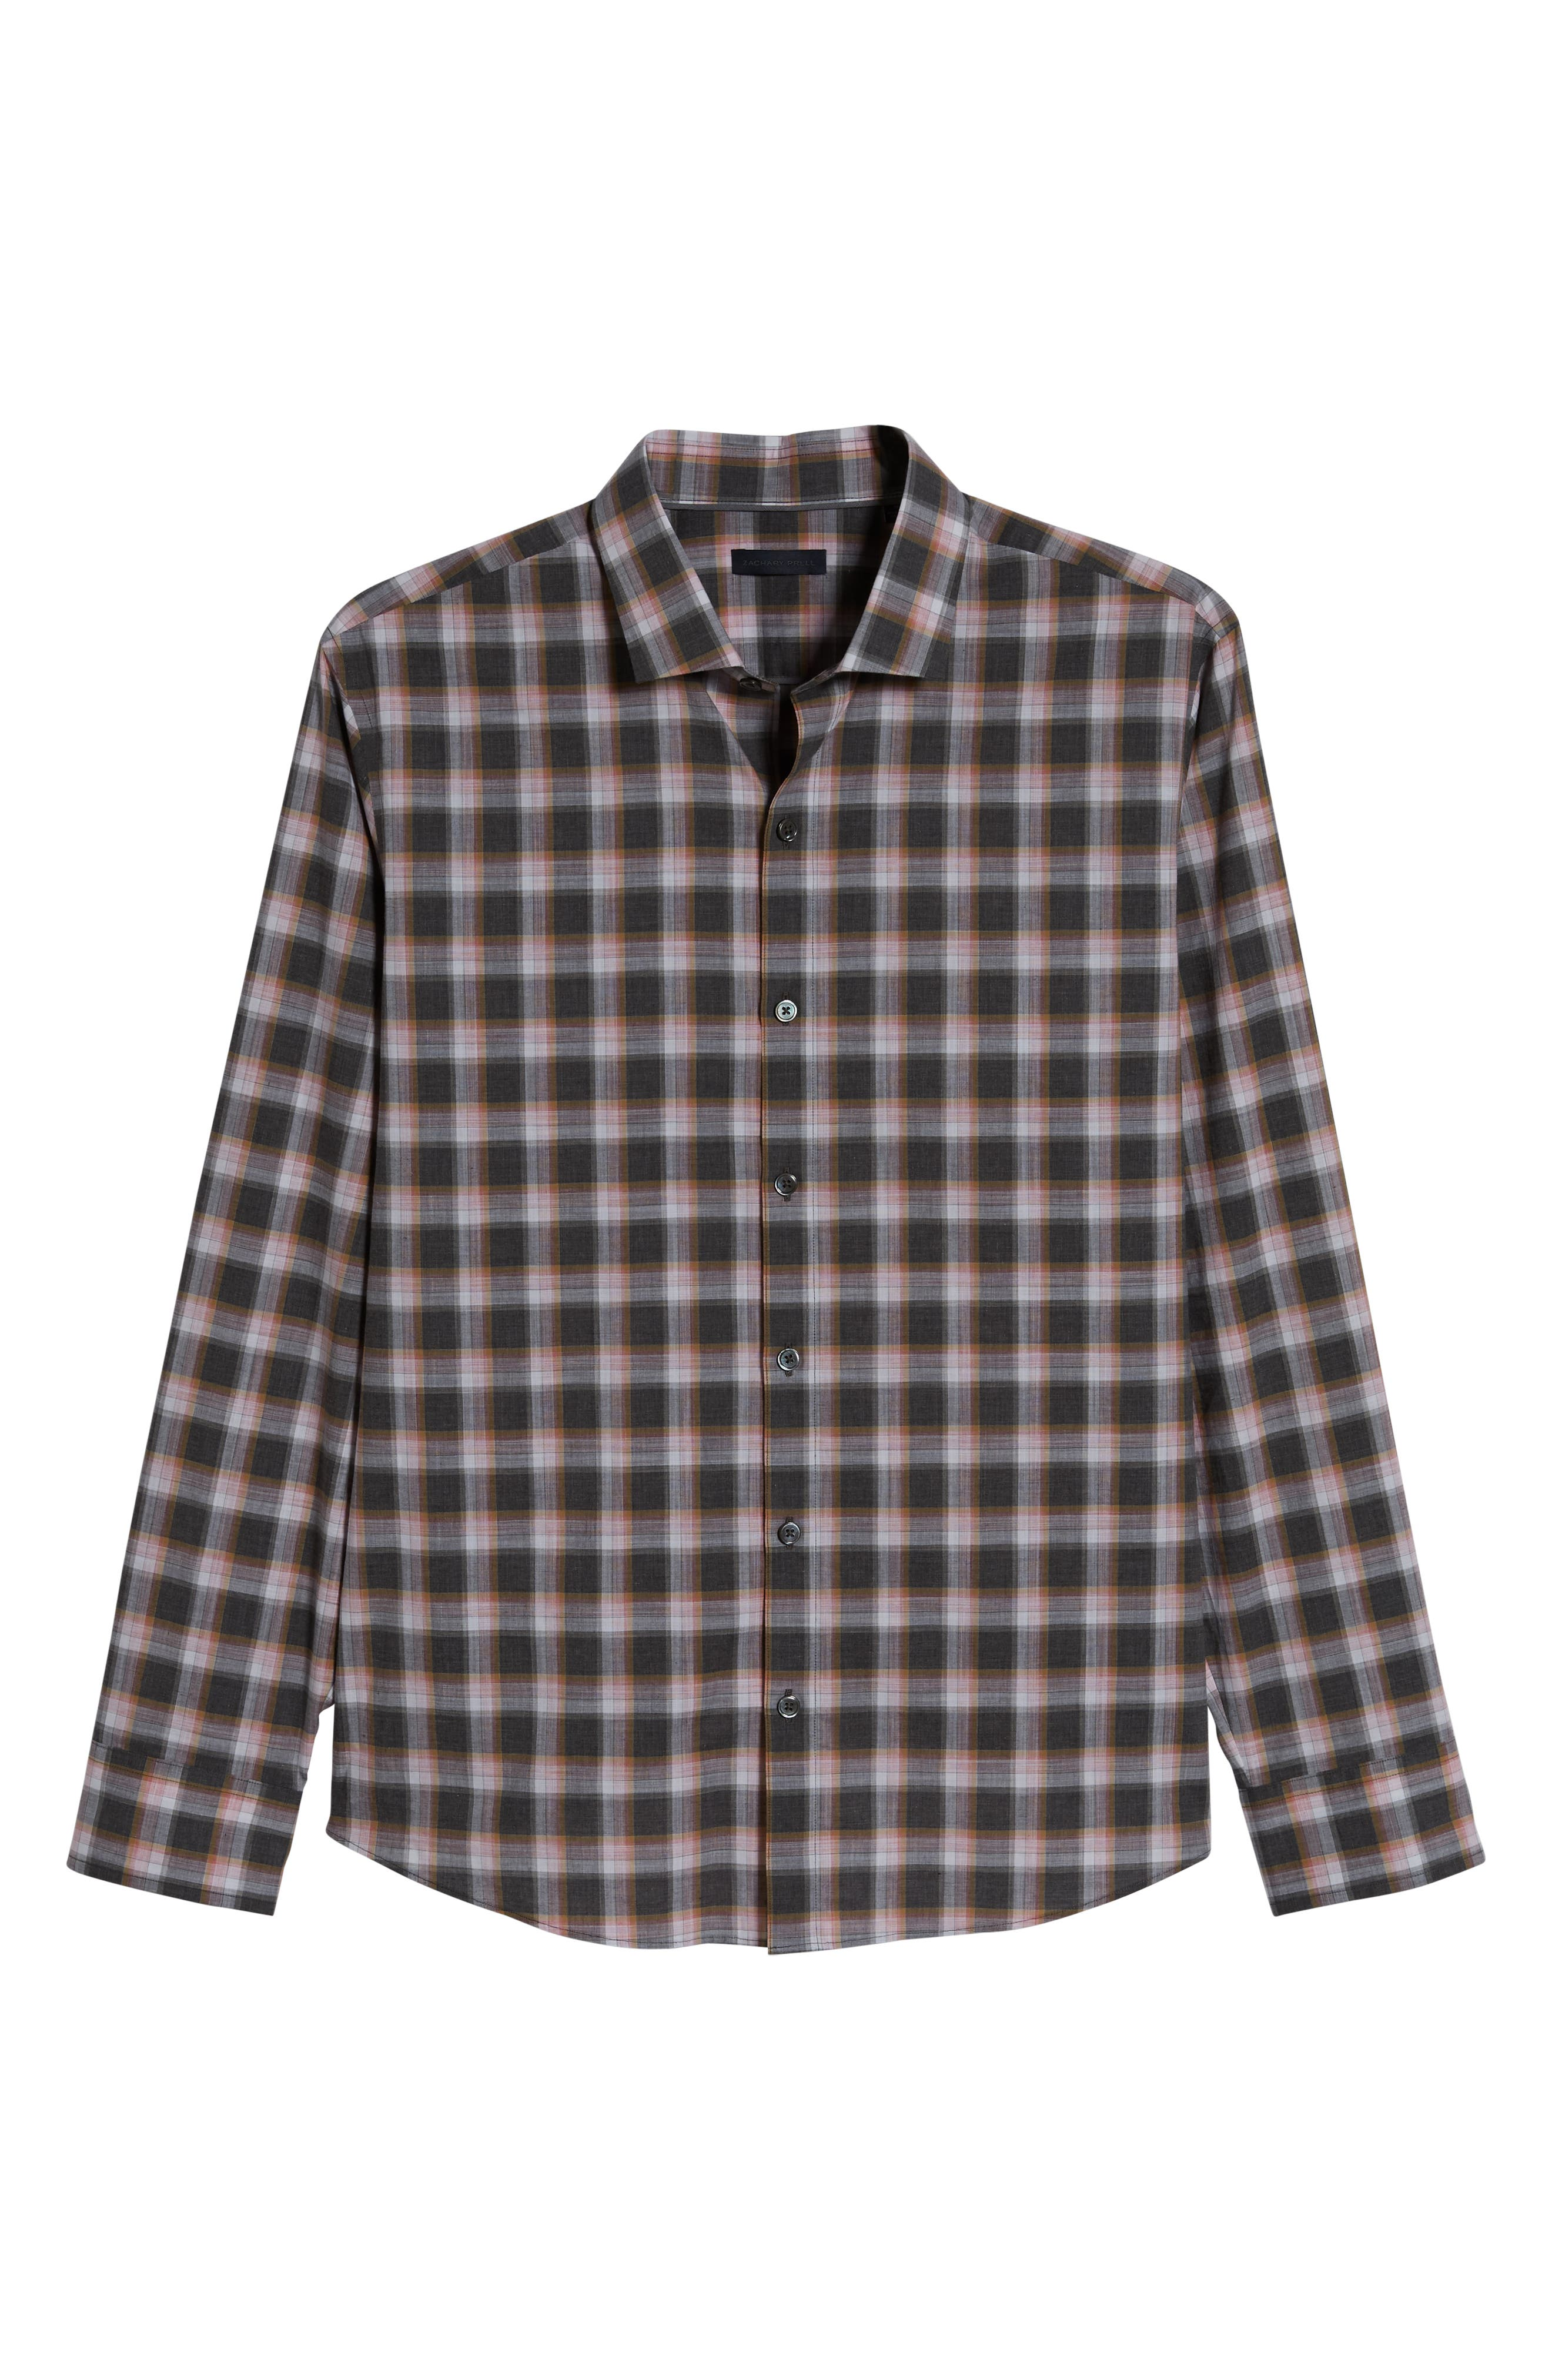 ZACHARY PRELL, Pagatpatan Regular Fit Plaid Sport Shirt, Alternate thumbnail 5, color, GREY